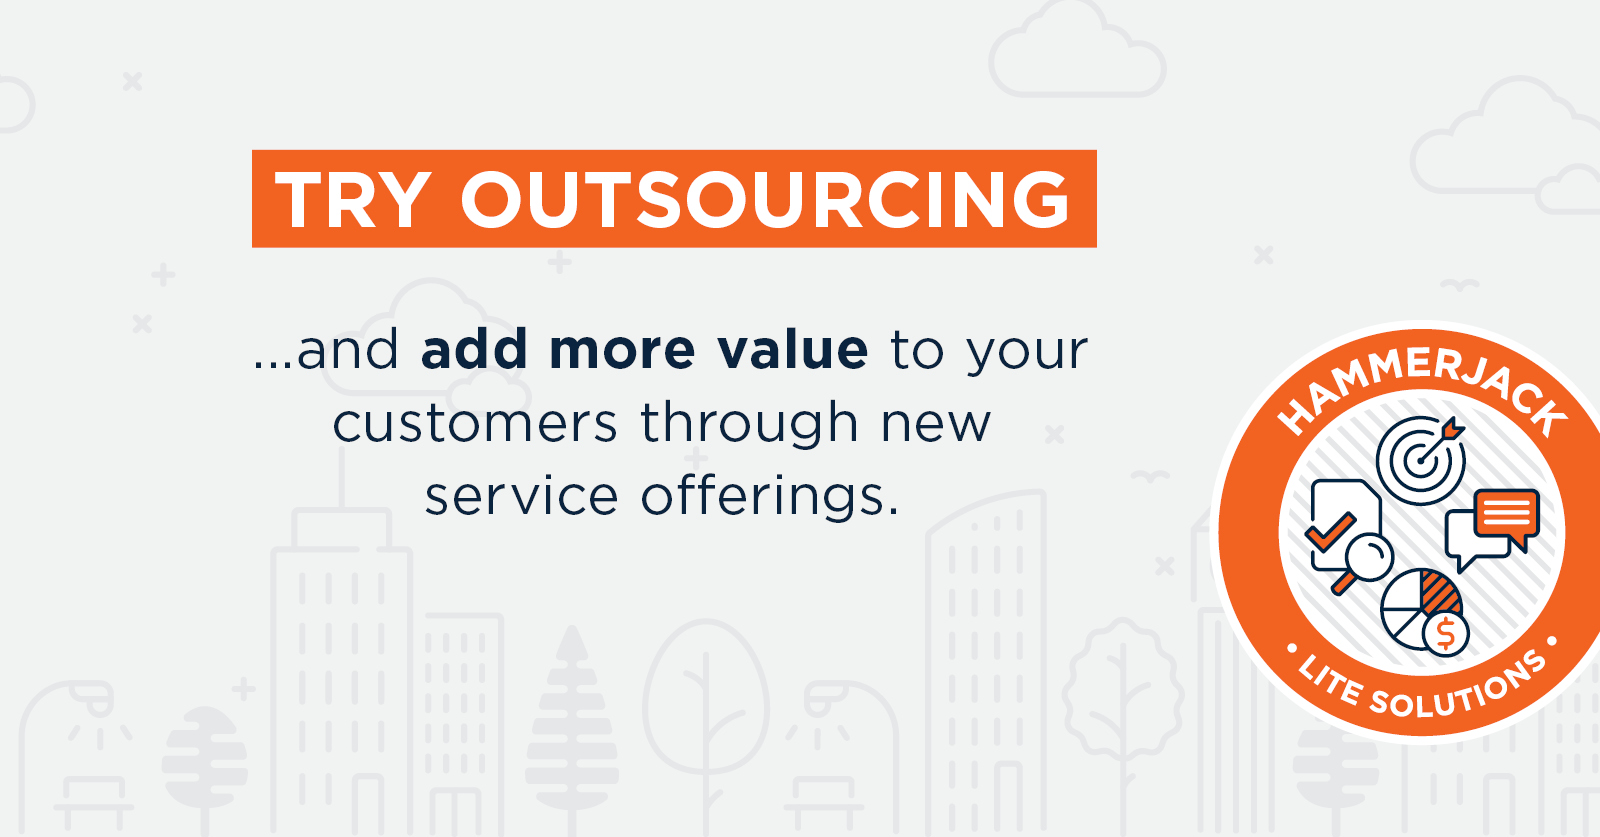 Try-outsourcing-5.jpg